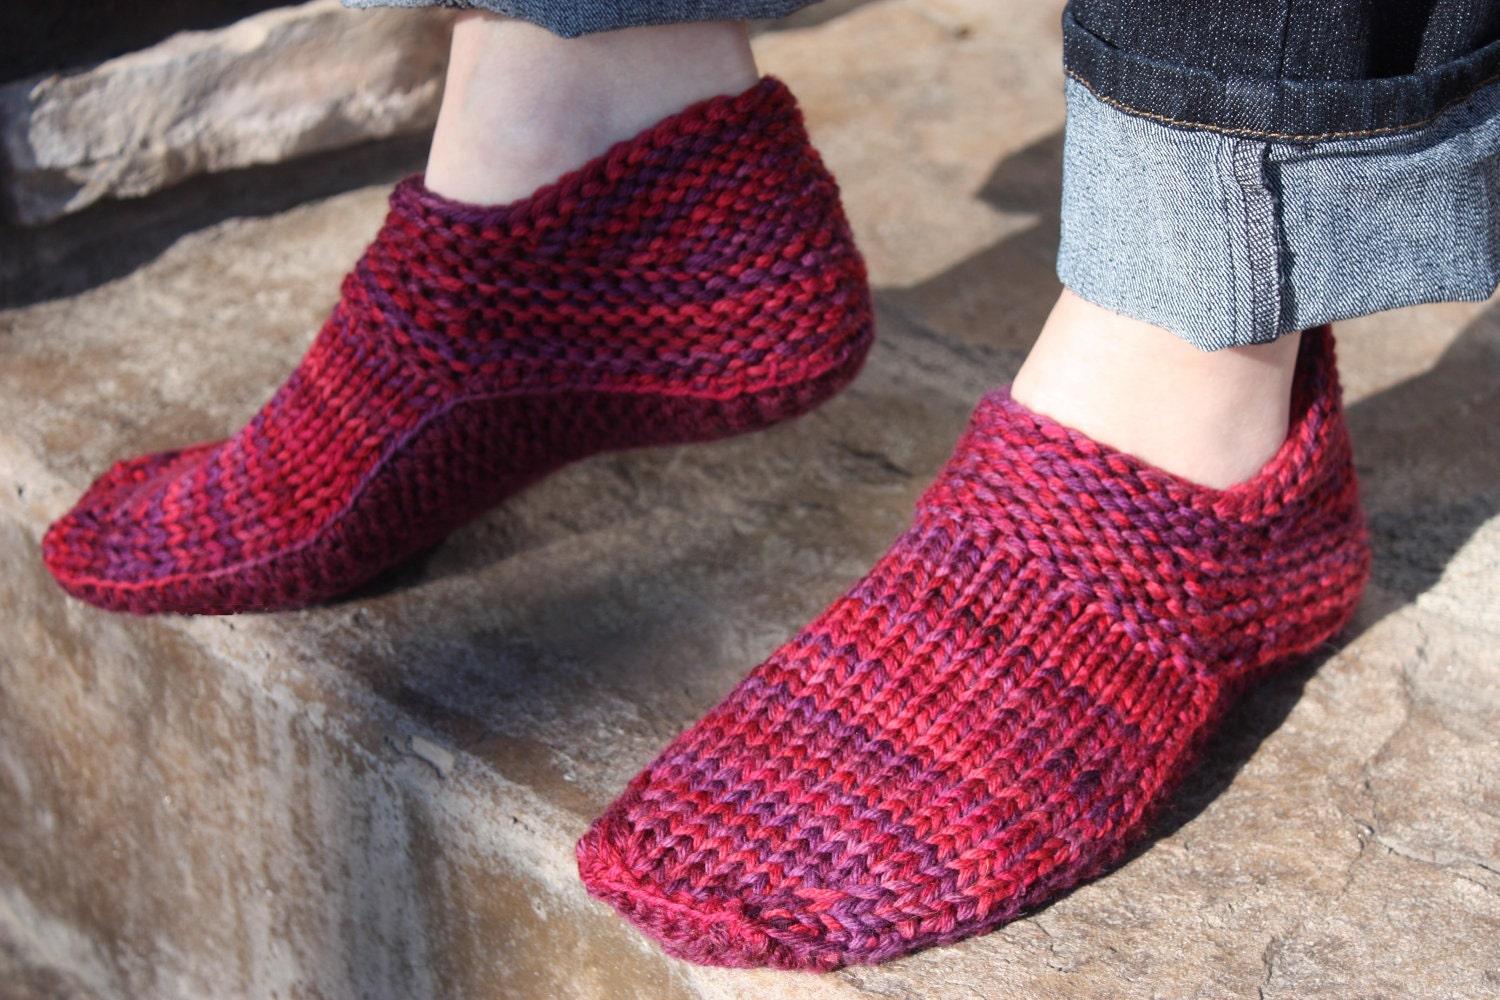 Options Slippers PATTERN Knit knit w/crochet plus Felting